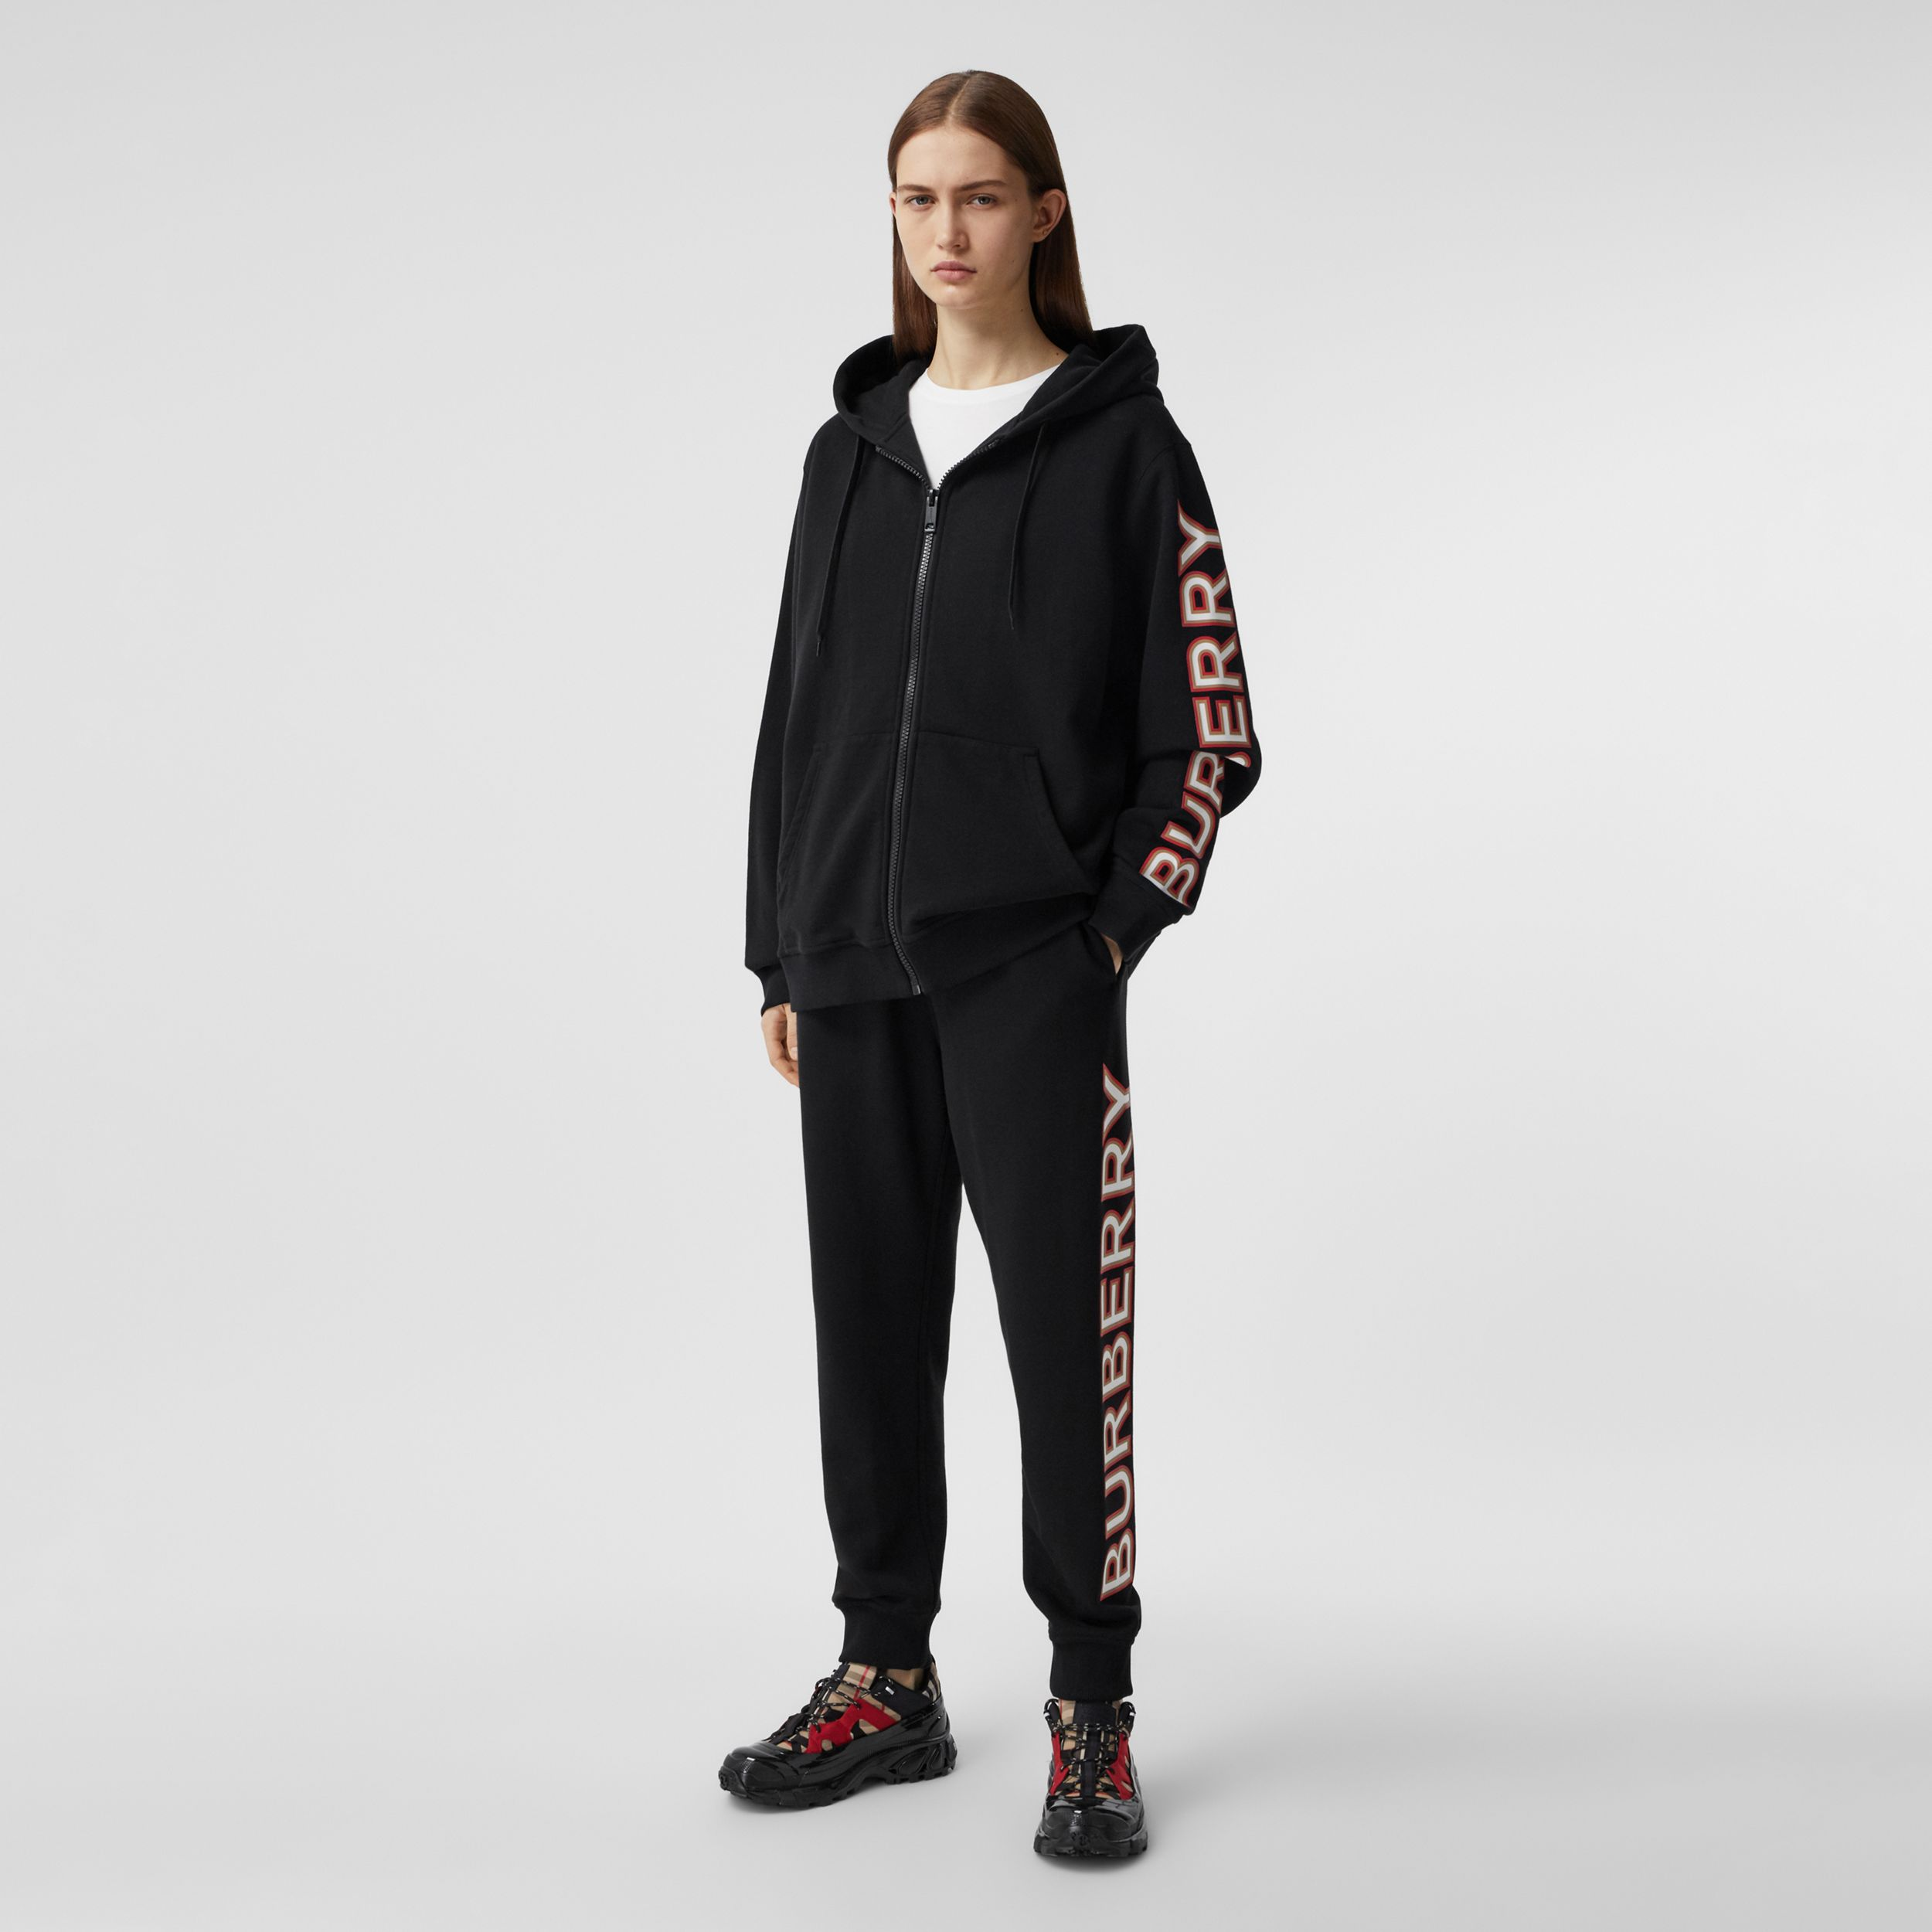 Logo Print Cotton Jogging Pants in Black - Women | Burberry - 1